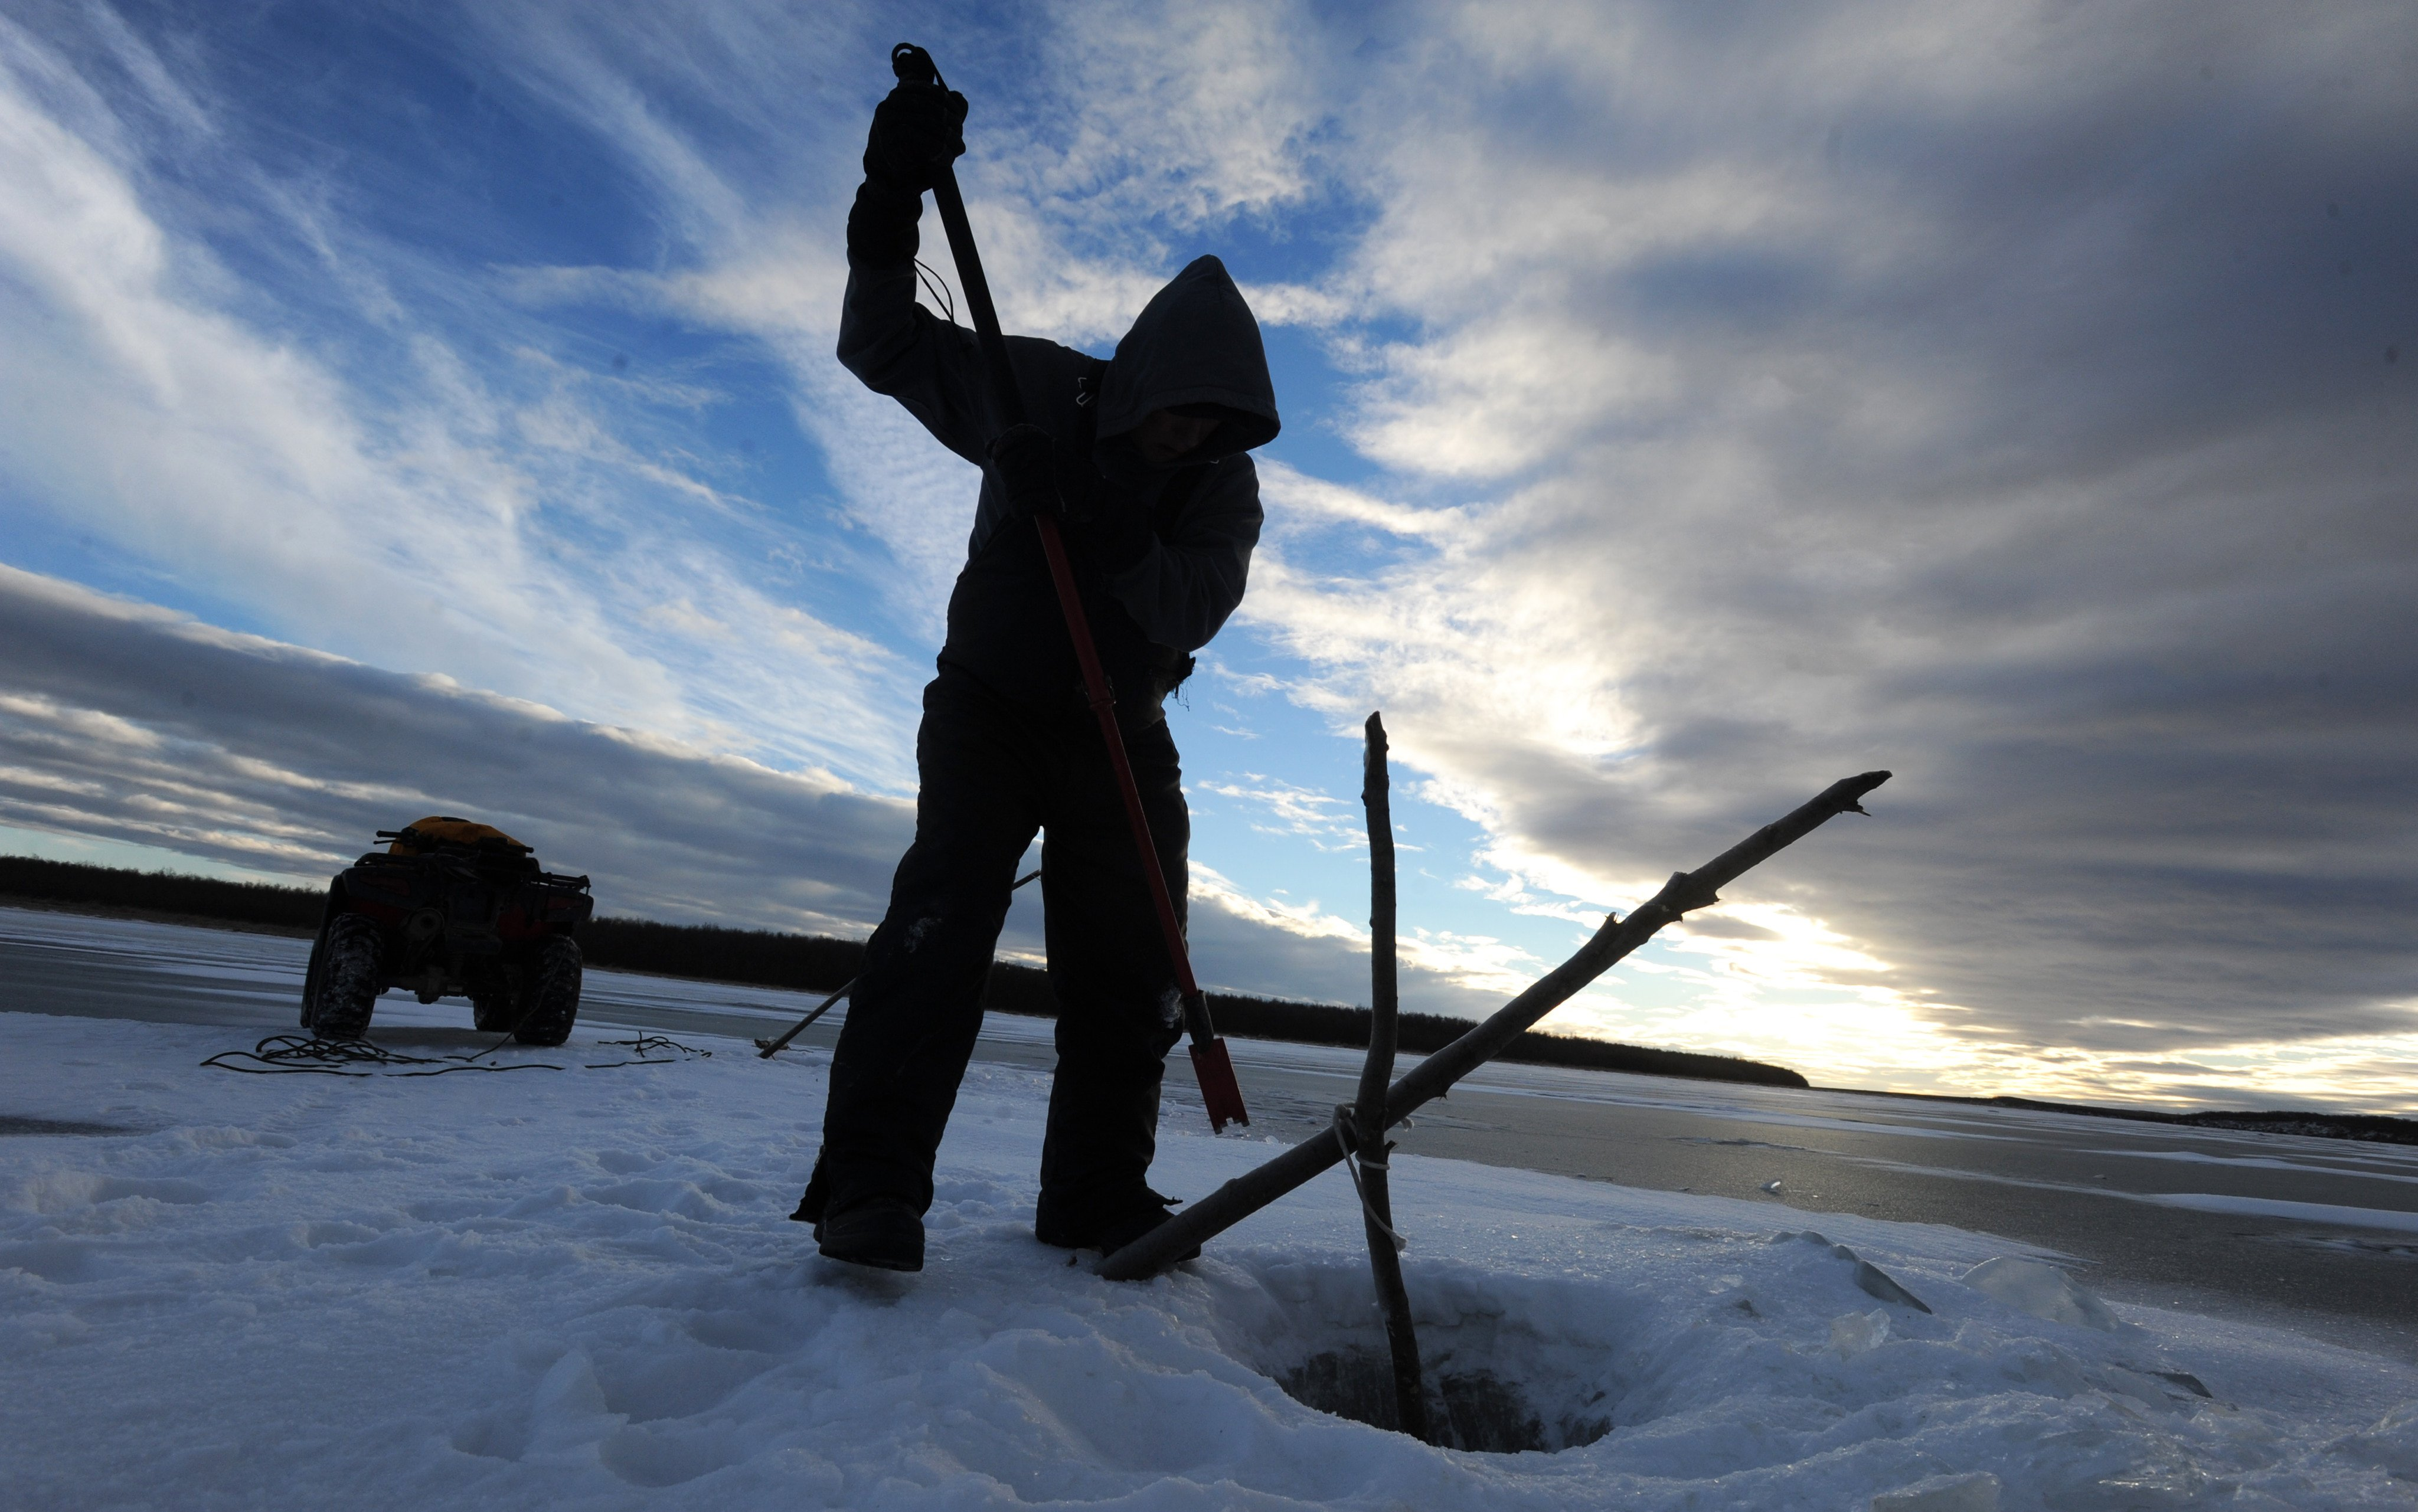 Richard Kammeyer of Bethel chips away ice on the frozen Kuskokwim River to check his subsistence gill net on Thursday, Jan. 8, 2015. Kammeyer was hoping to find whitefish, lush or burbot, sheefish, and even pike, but his net came up empty. (Bill Roth / Alaska Dispatch News)